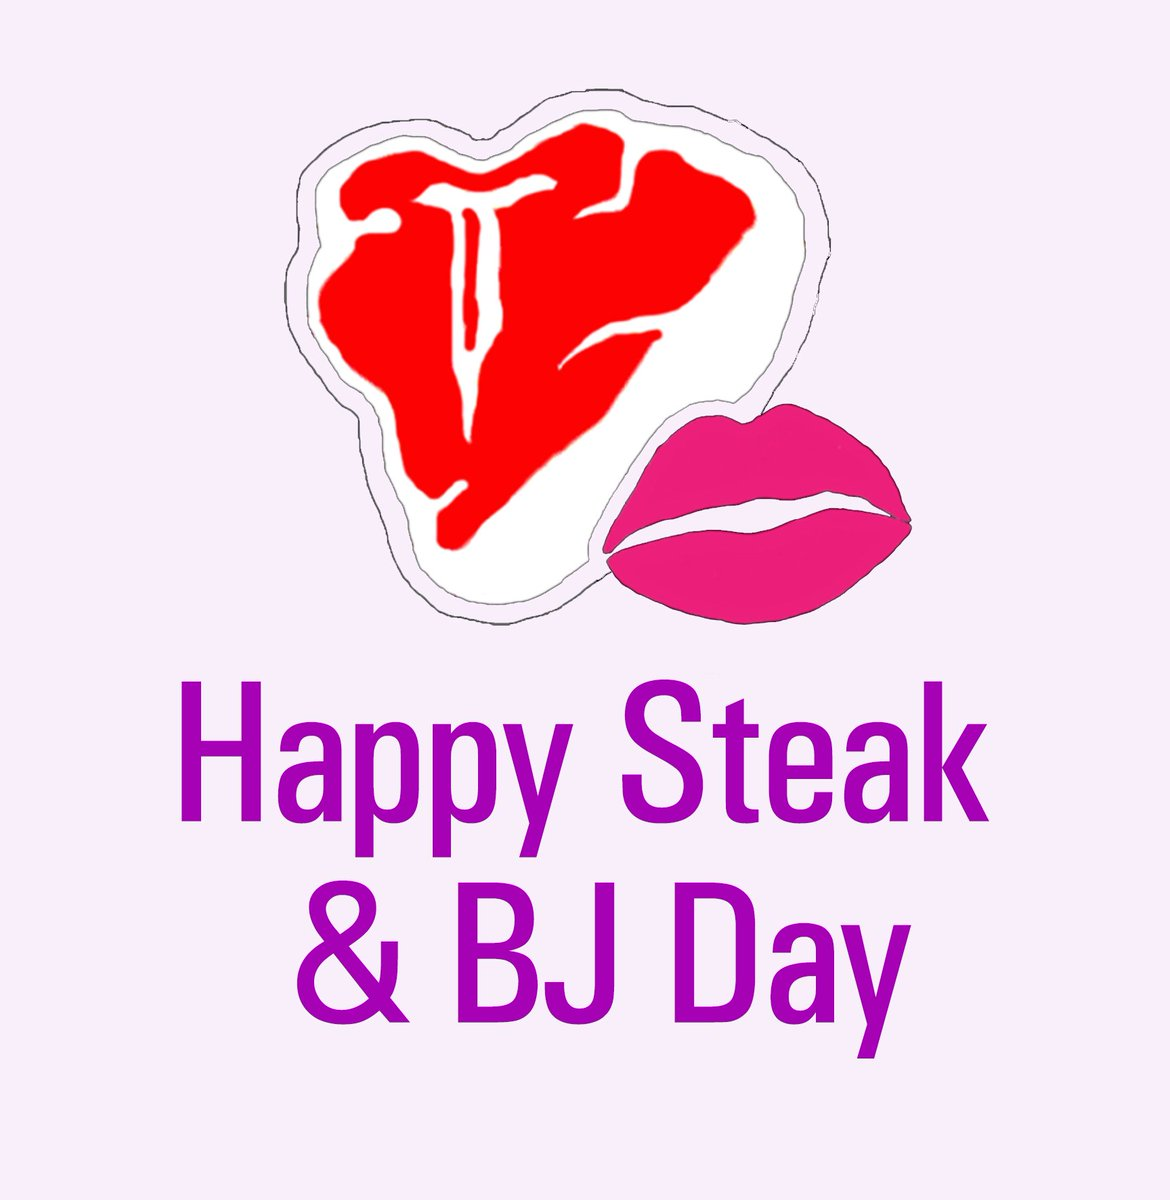 Happy Steak and BJ Day!   Make his steak medium rare and his BJ well done   #SteakandBJDay #AdultWork <br>http://pic.twitter.com/gX0XWjyZAB